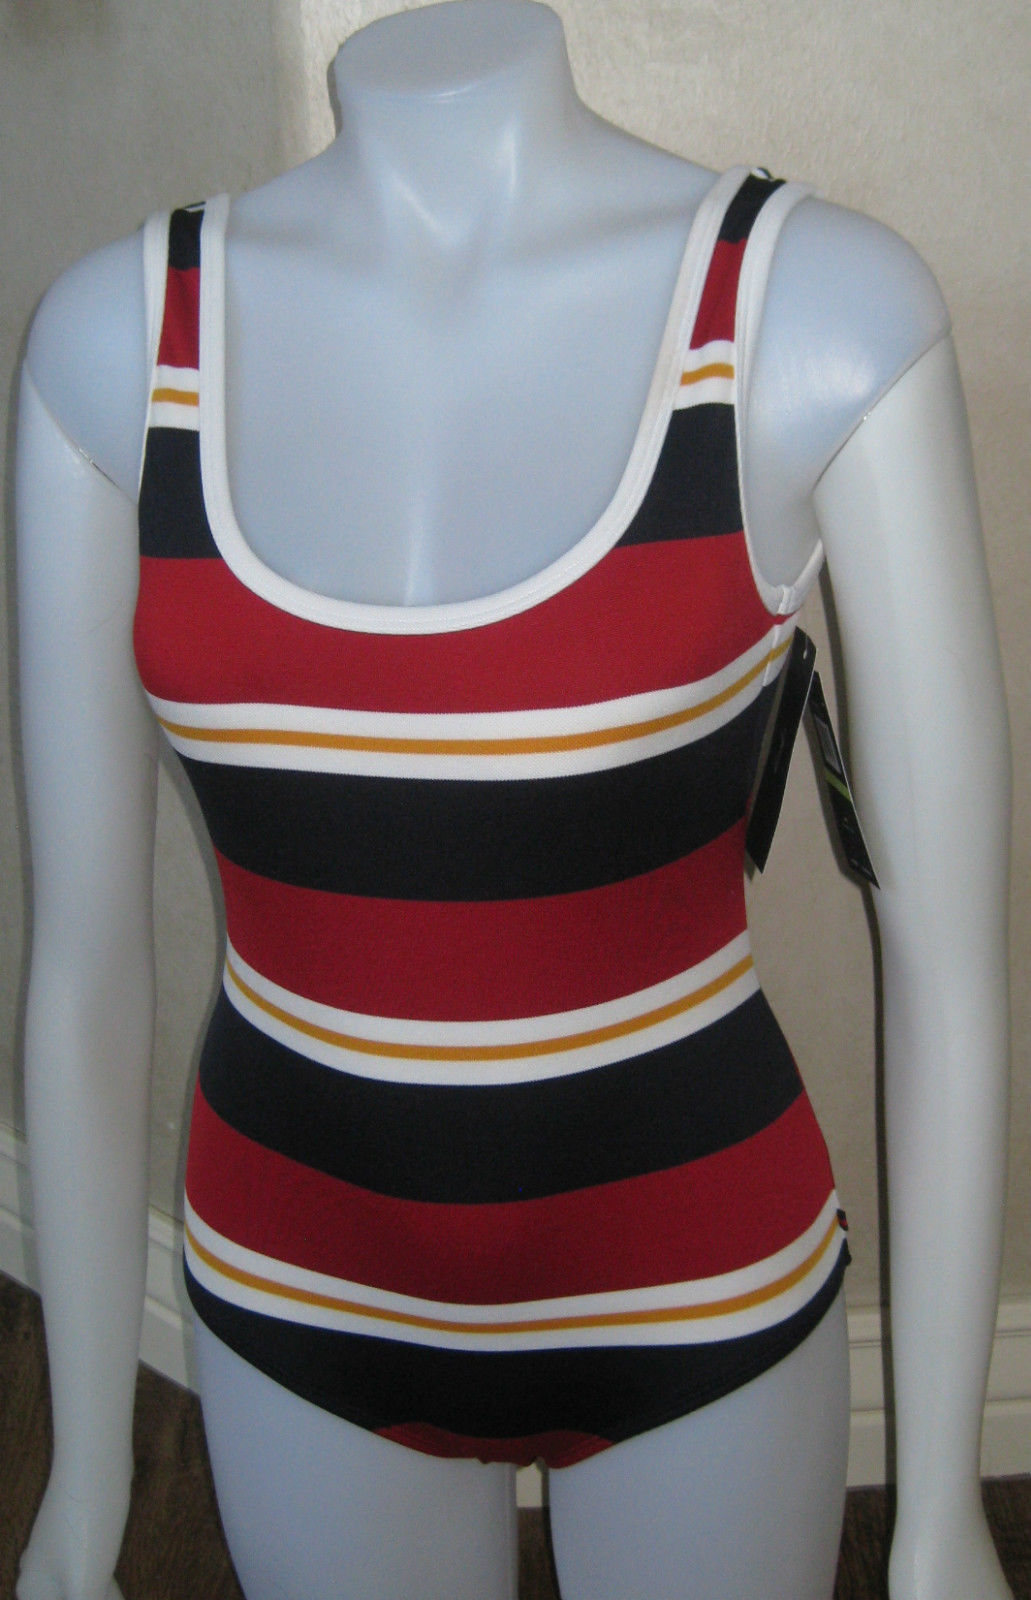 Primary image for TOMMY HILFIGER U NECK MAILLOT ONE PIECE SWIMSUIT SZ 6 MOD RED STRIPED $108 NWT